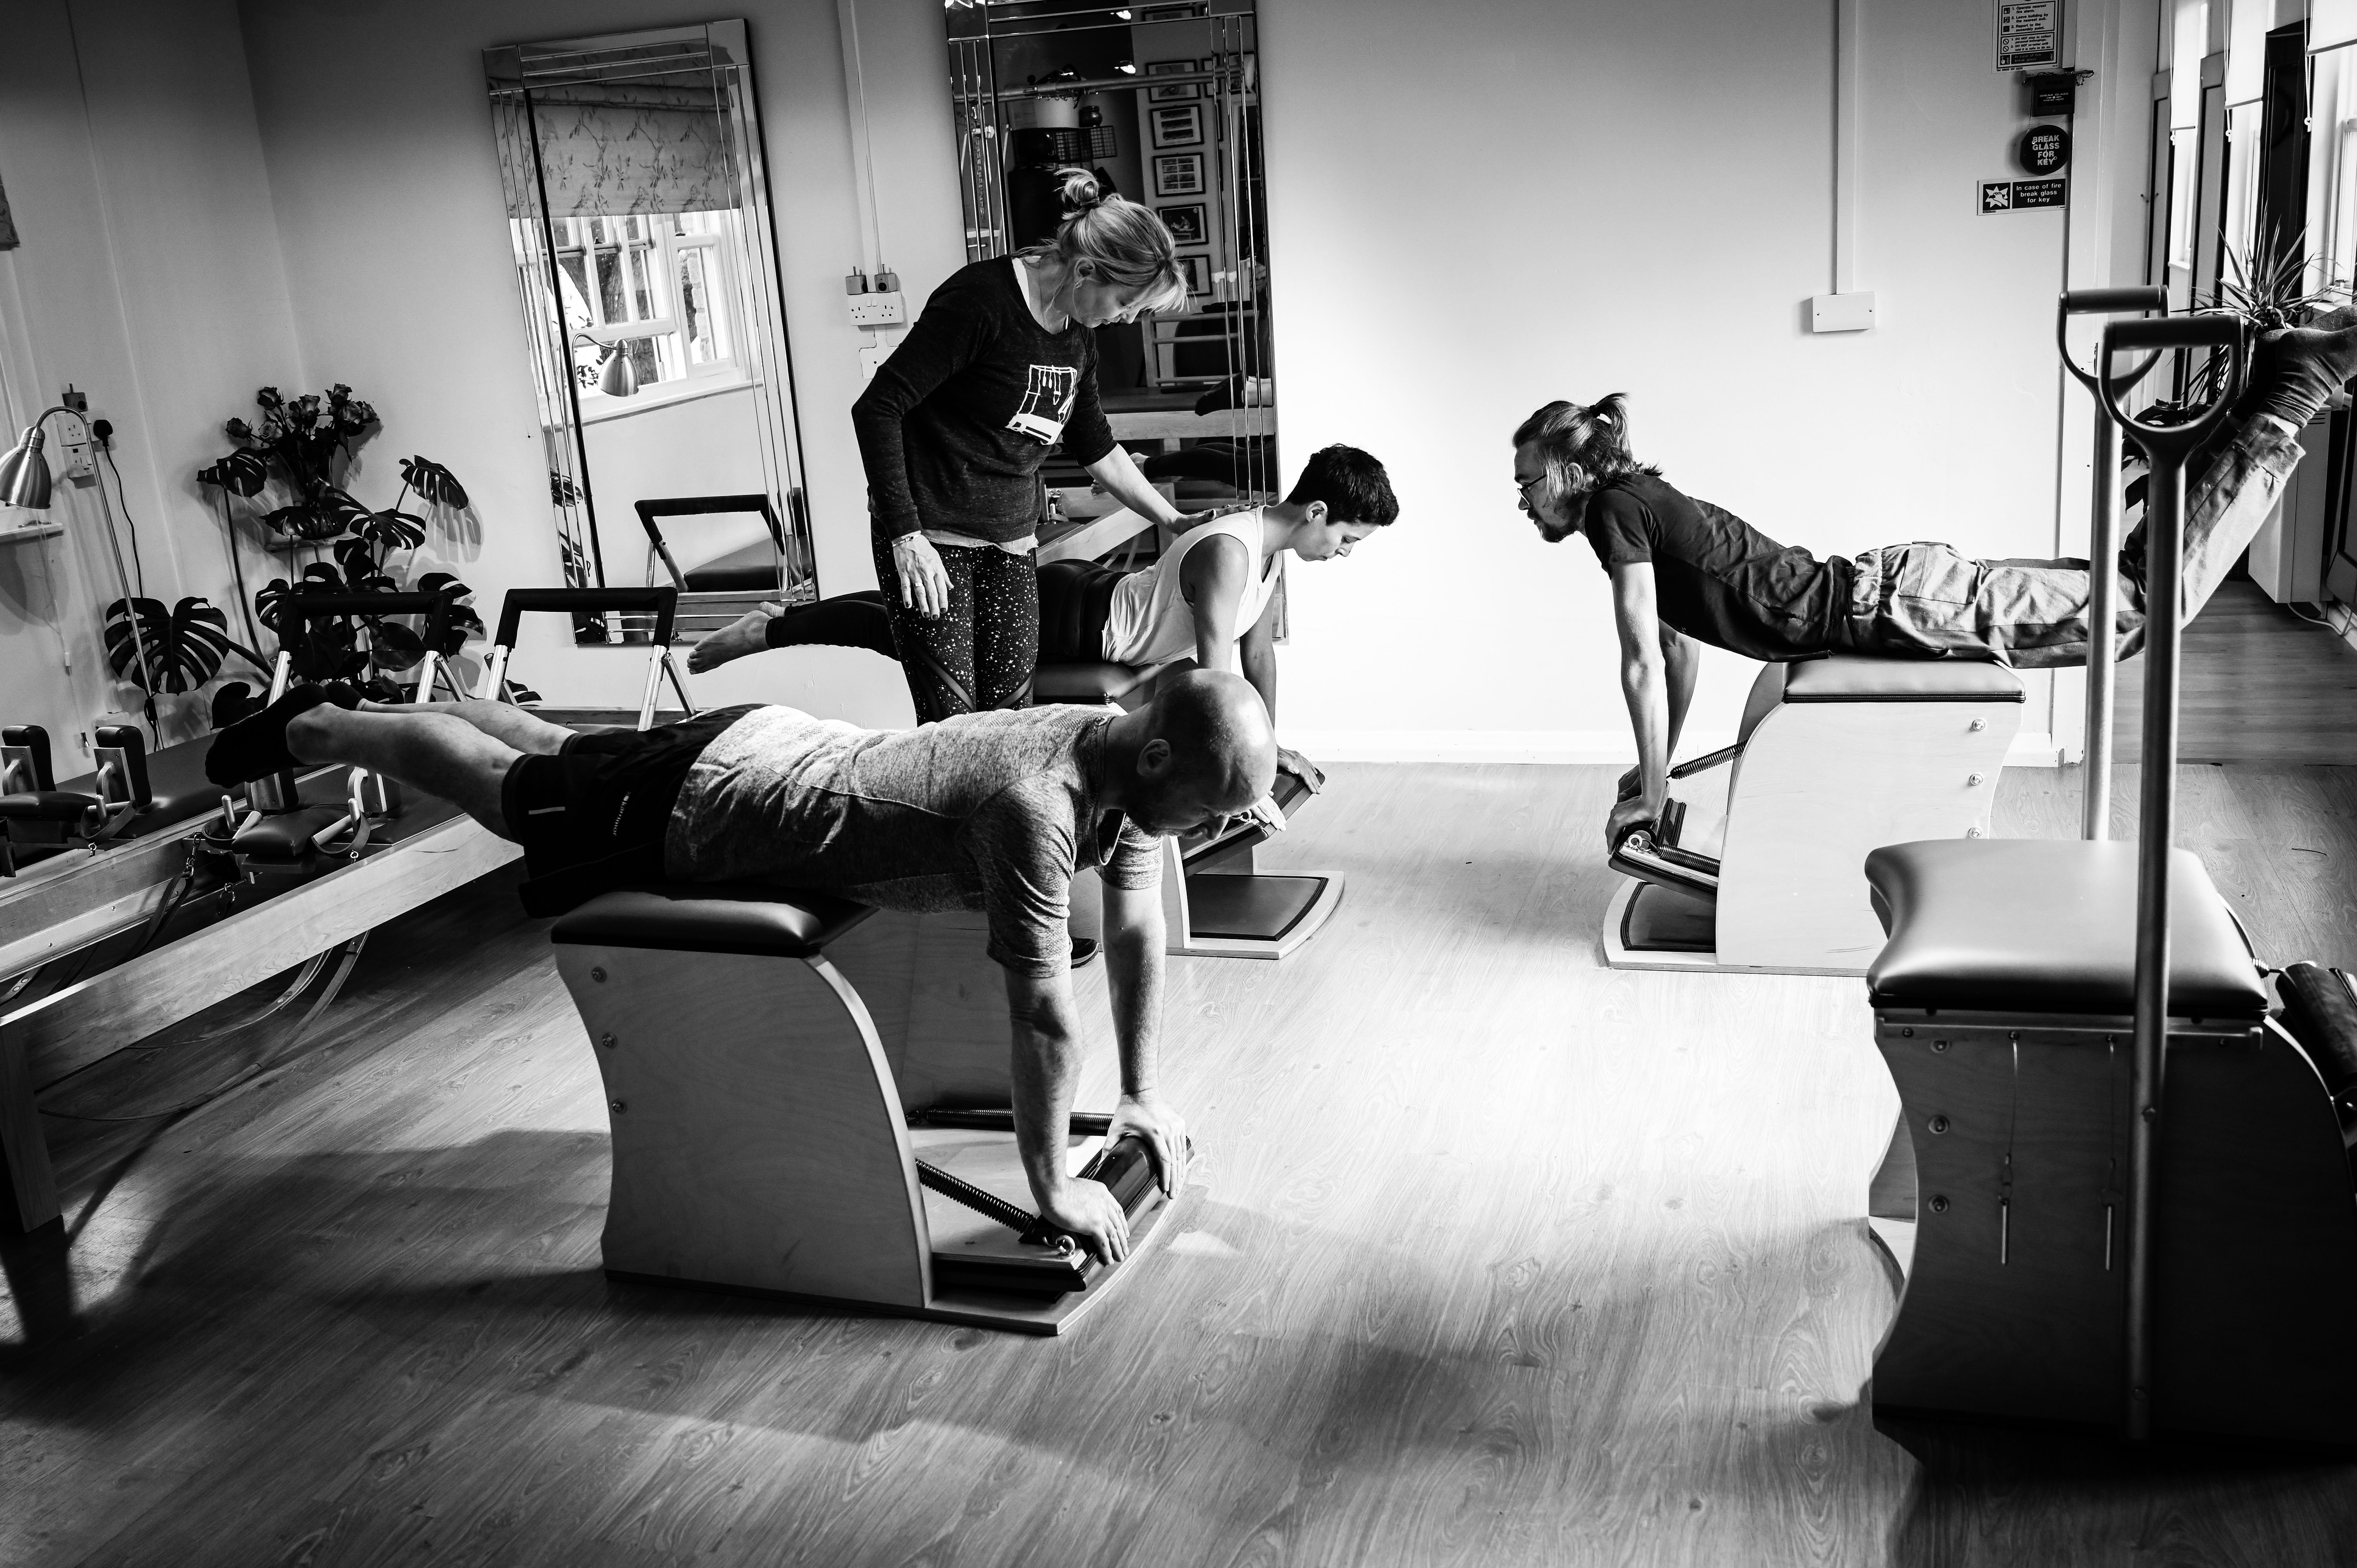 pilates clients on Wunda Chair exercise at Studiq